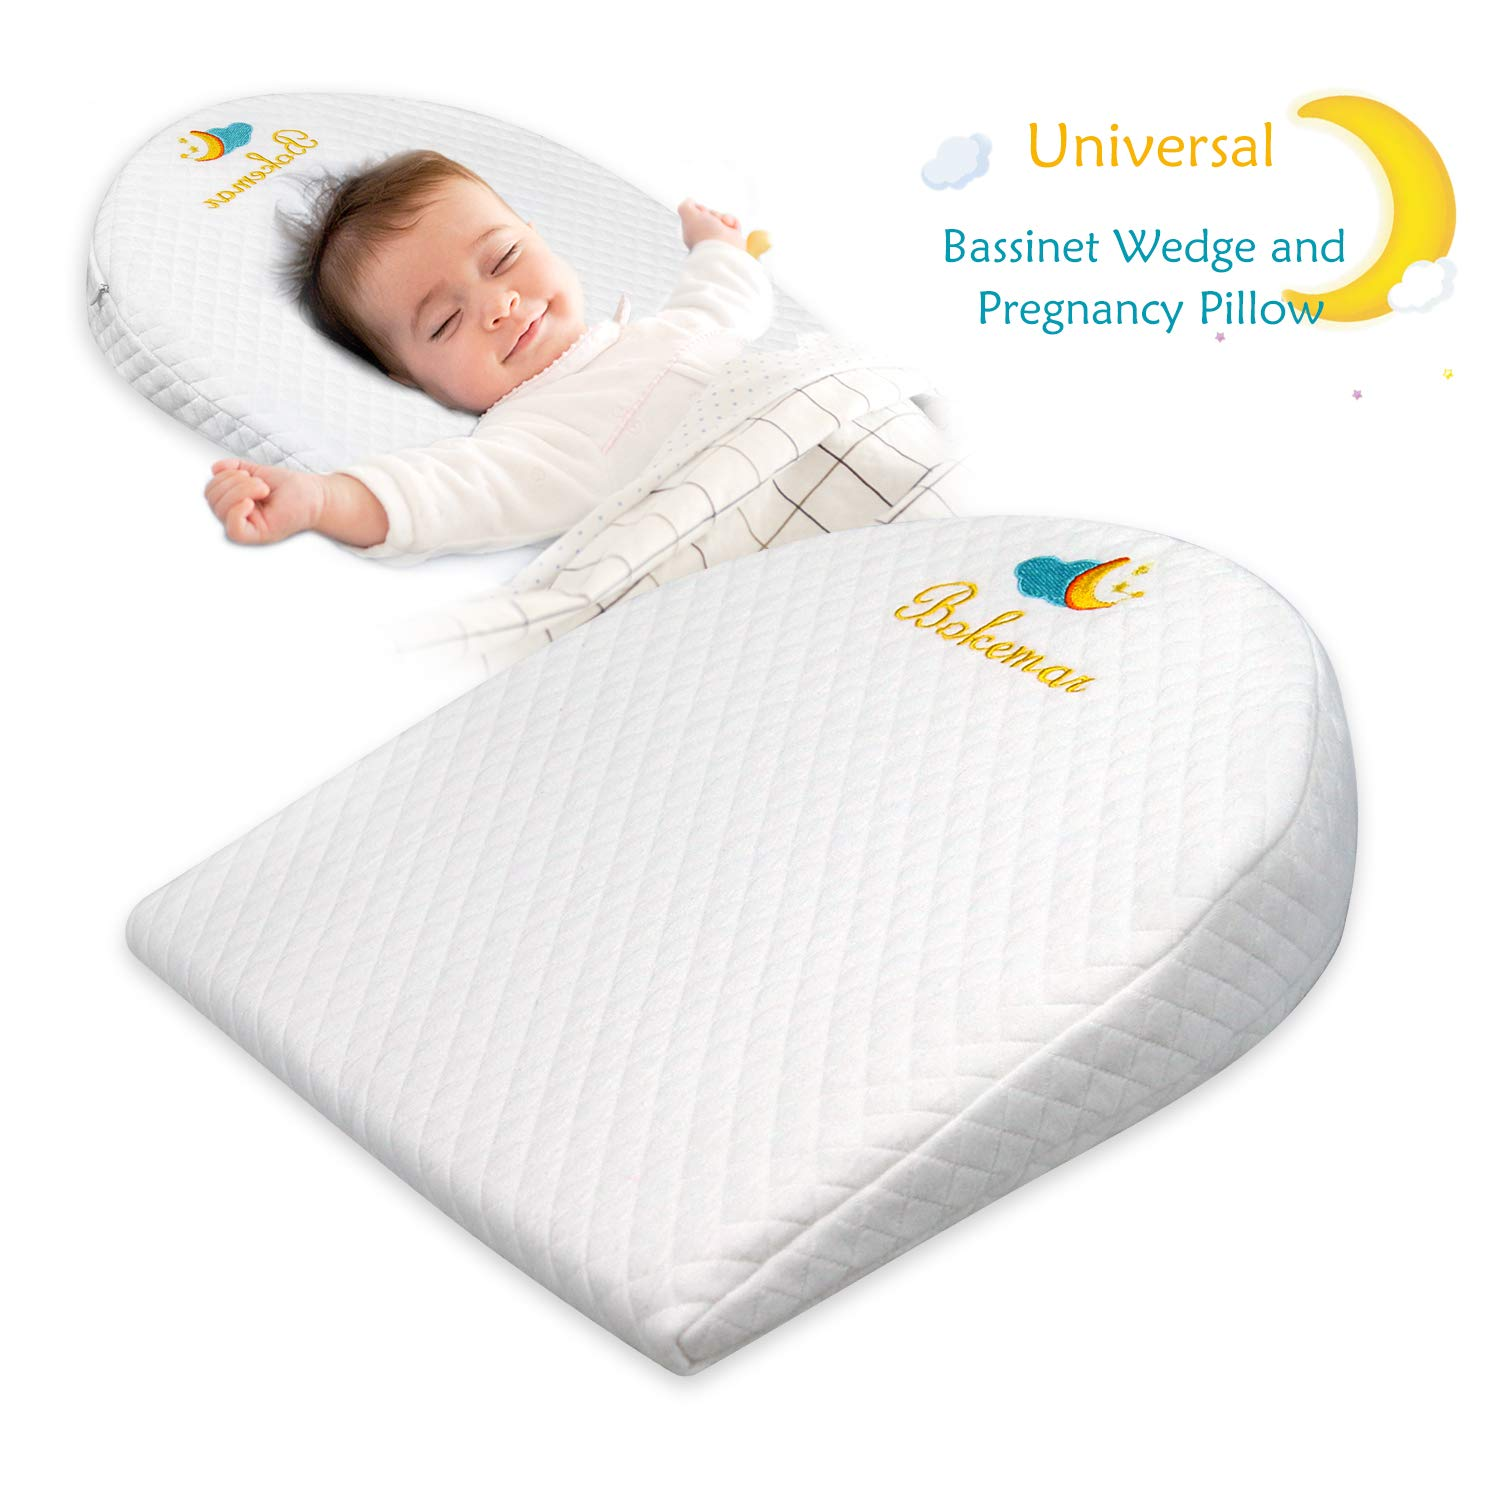 bokemar Universal Bassinet Wedge Pillow for Acid Reflux & Nasal Congestion Relief with Cotton & Waterproof Covers Baby Sleep Positioner for Under The Mattress 12-Degree